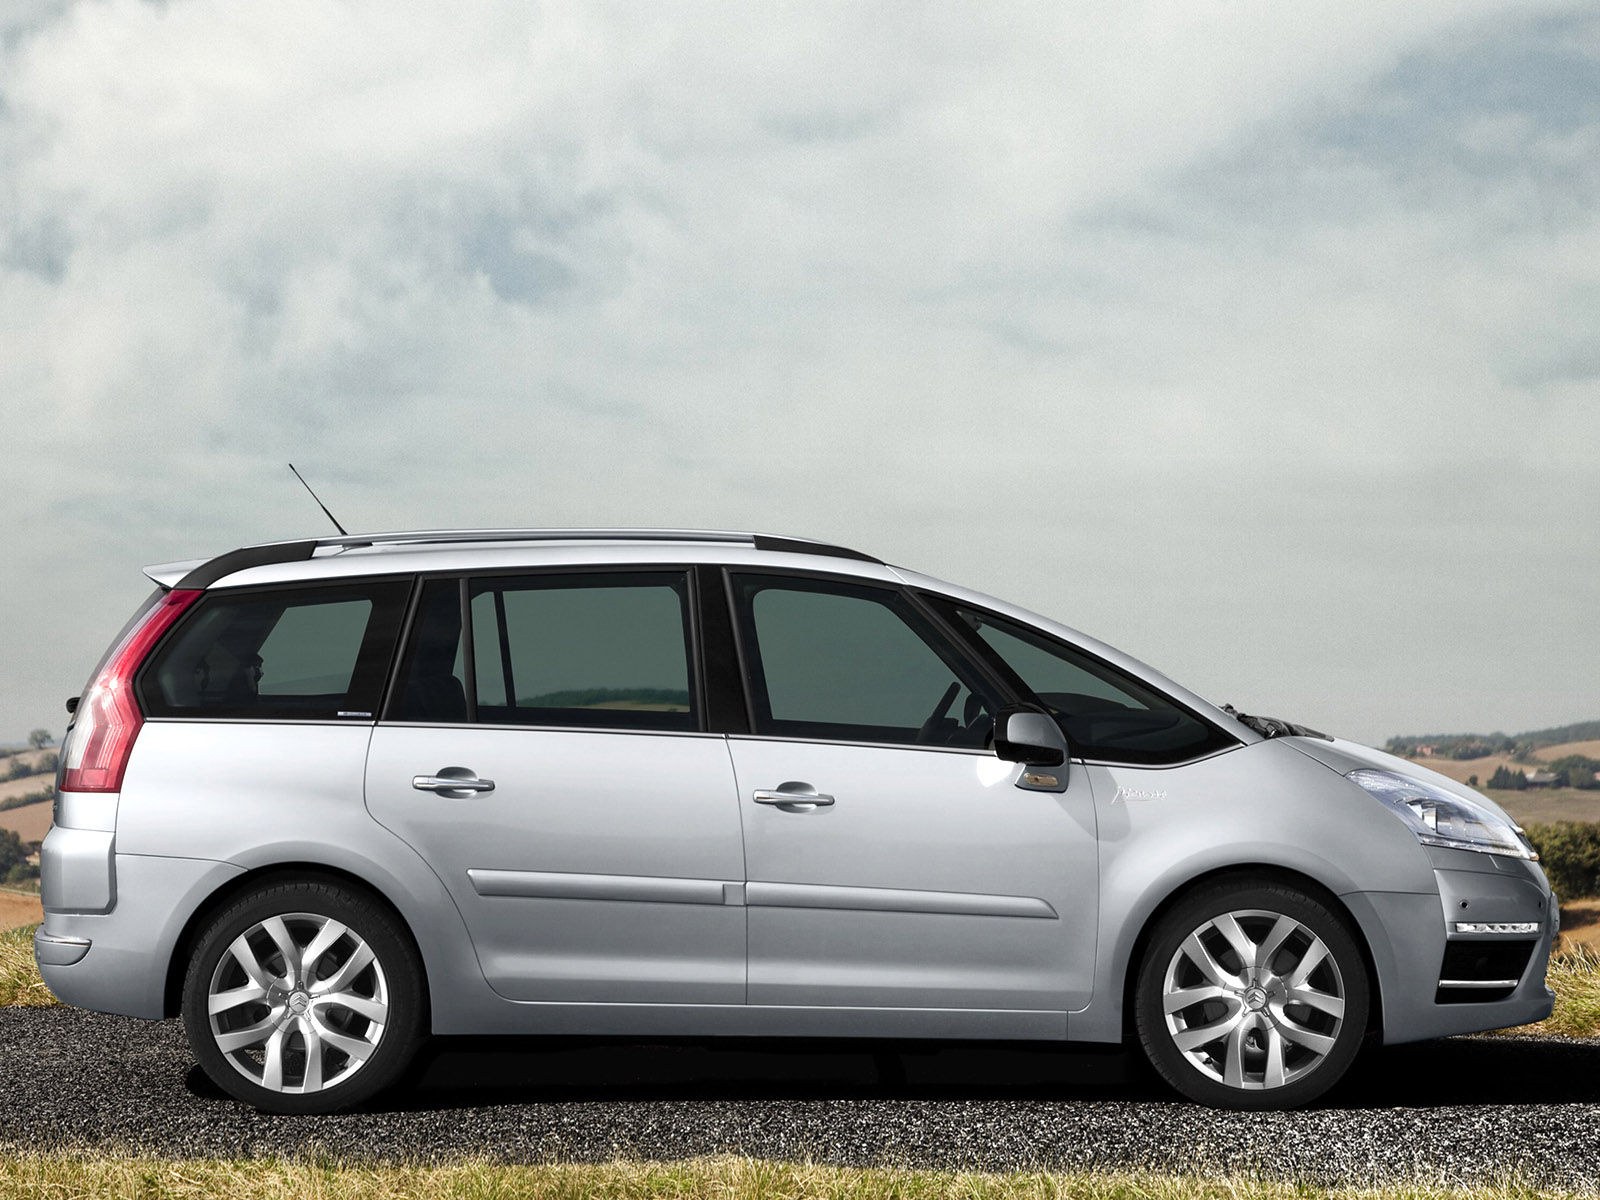 citroen c4 grand picasso 2010 citroen c4 grand picasso 2010 photo 06 car in pictures car. Black Bedroom Furniture Sets. Home Design Ideas